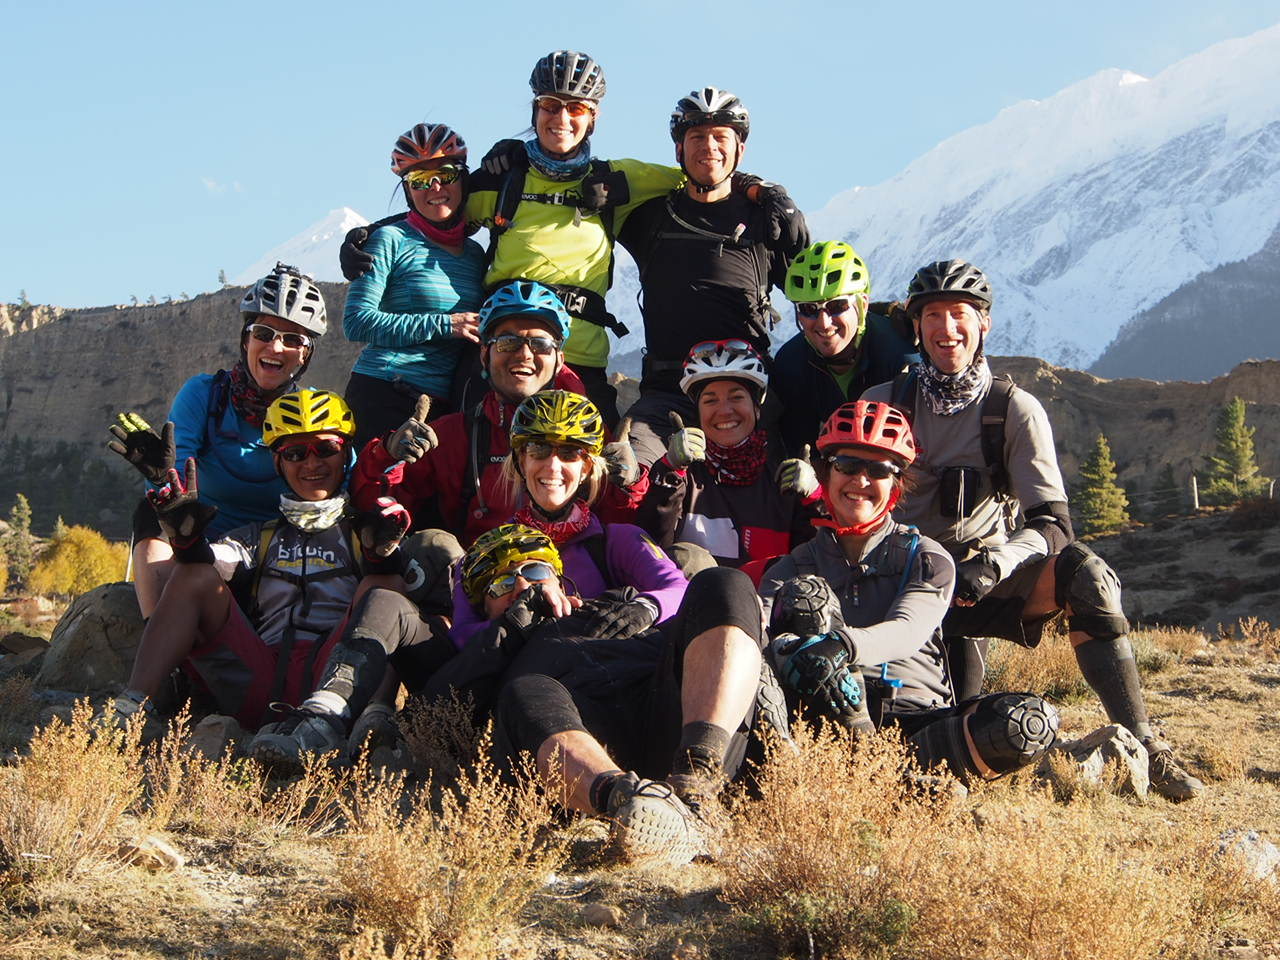 Group of smiling men and women in mountain bike gear posing together for photo on a field with mountains in the baackground